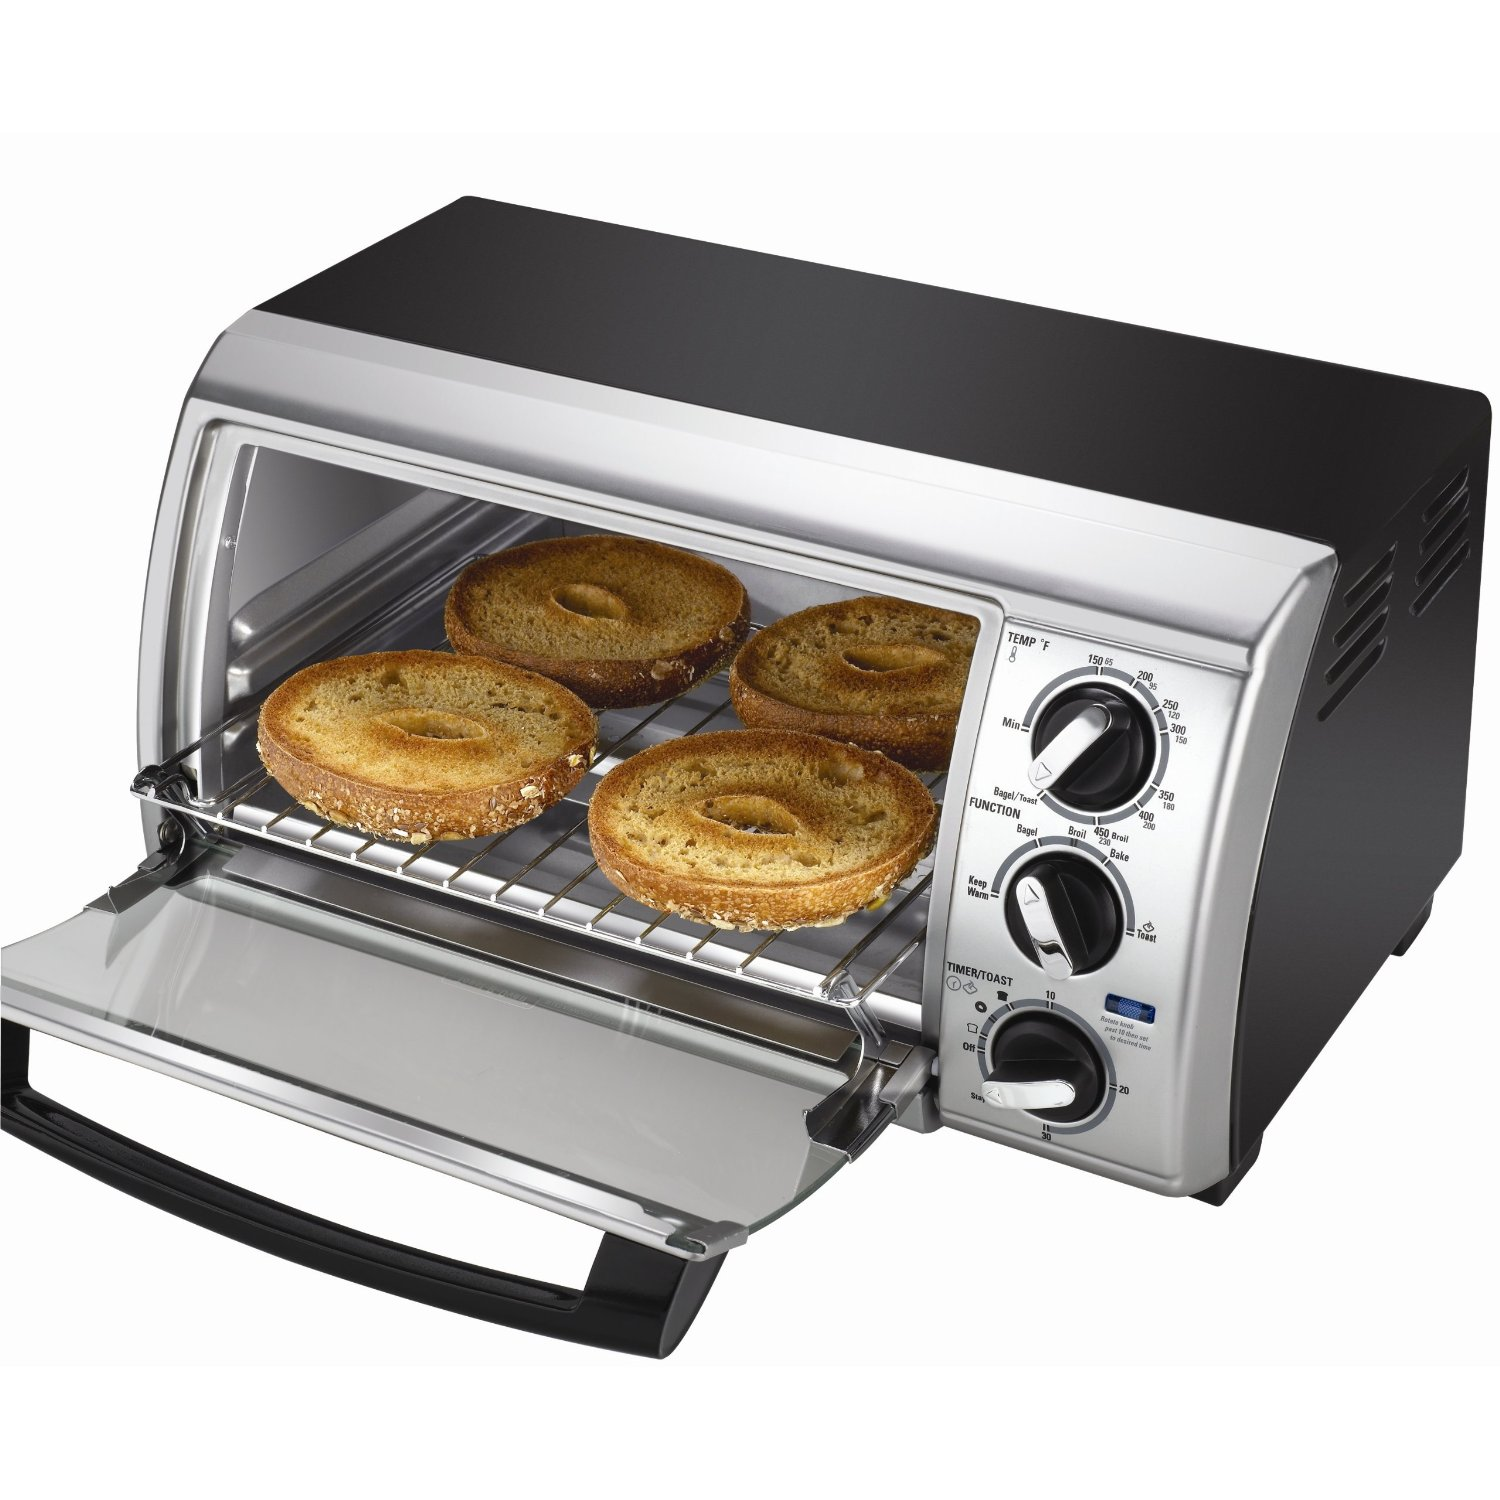 Countertop Oven Toaster : ... appliance packages: TRO480BS Toast-R-Oven Toaster Oven by Black Decker